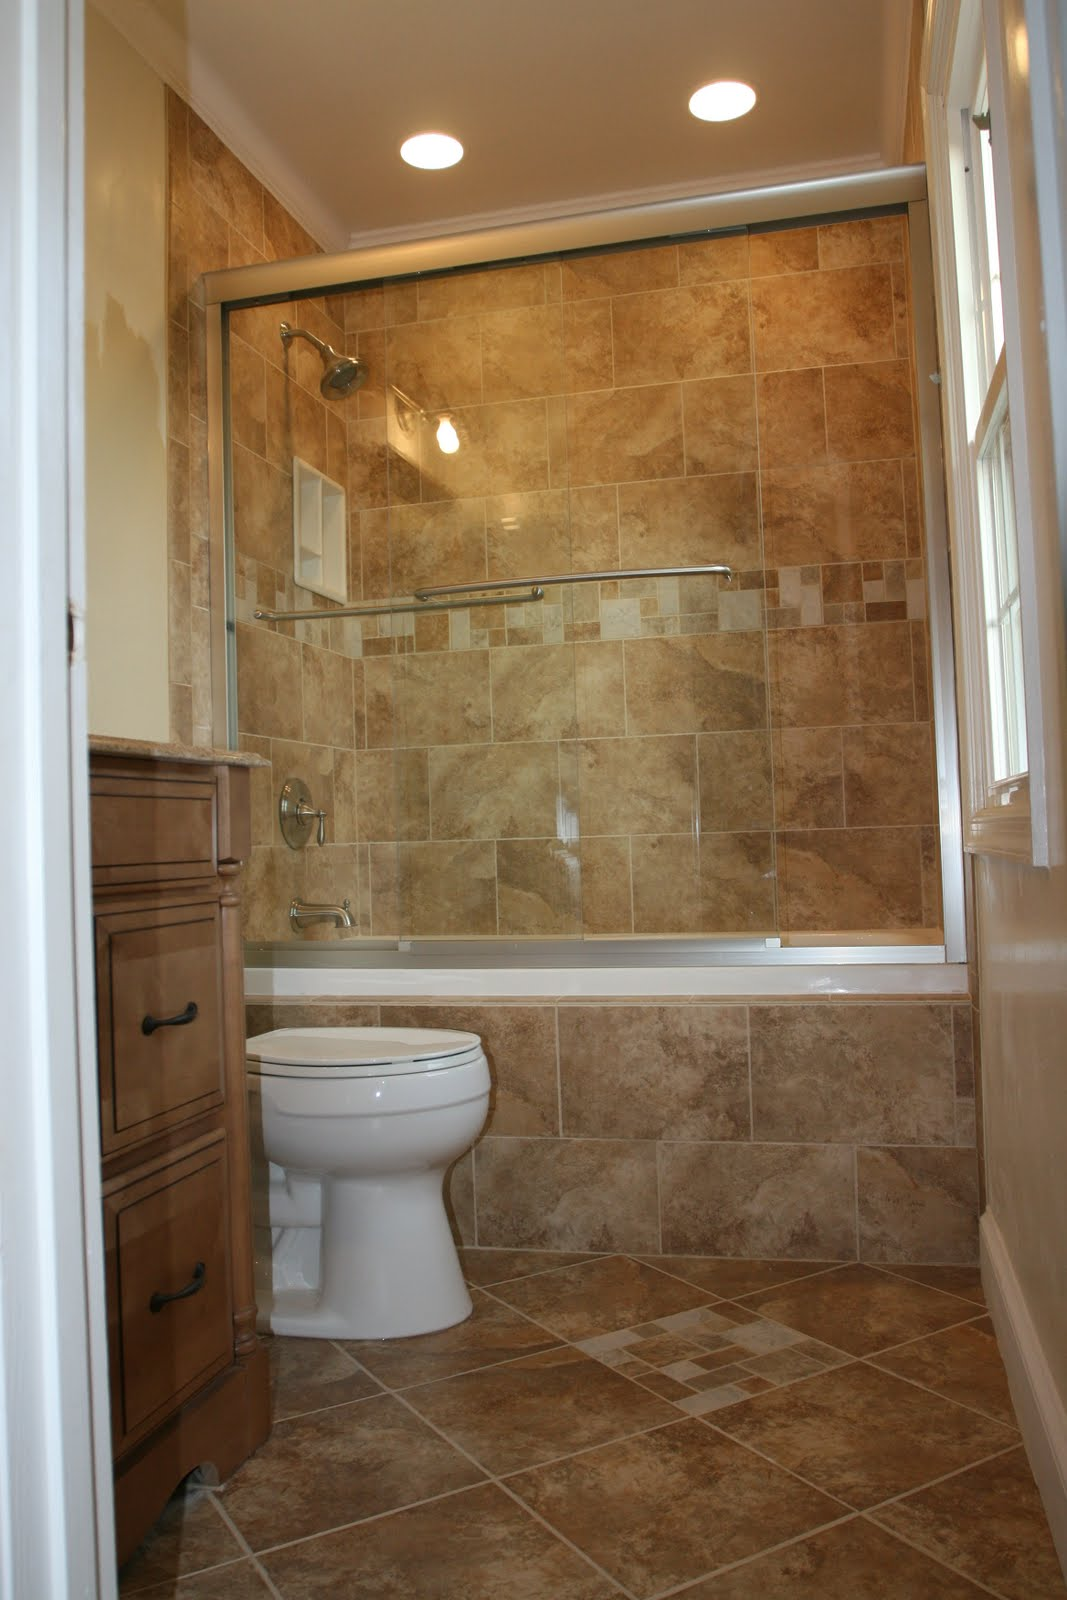 Bathroom Tub And Shower Tile Designs : Bathroom remodeling design ideas tile shower niches